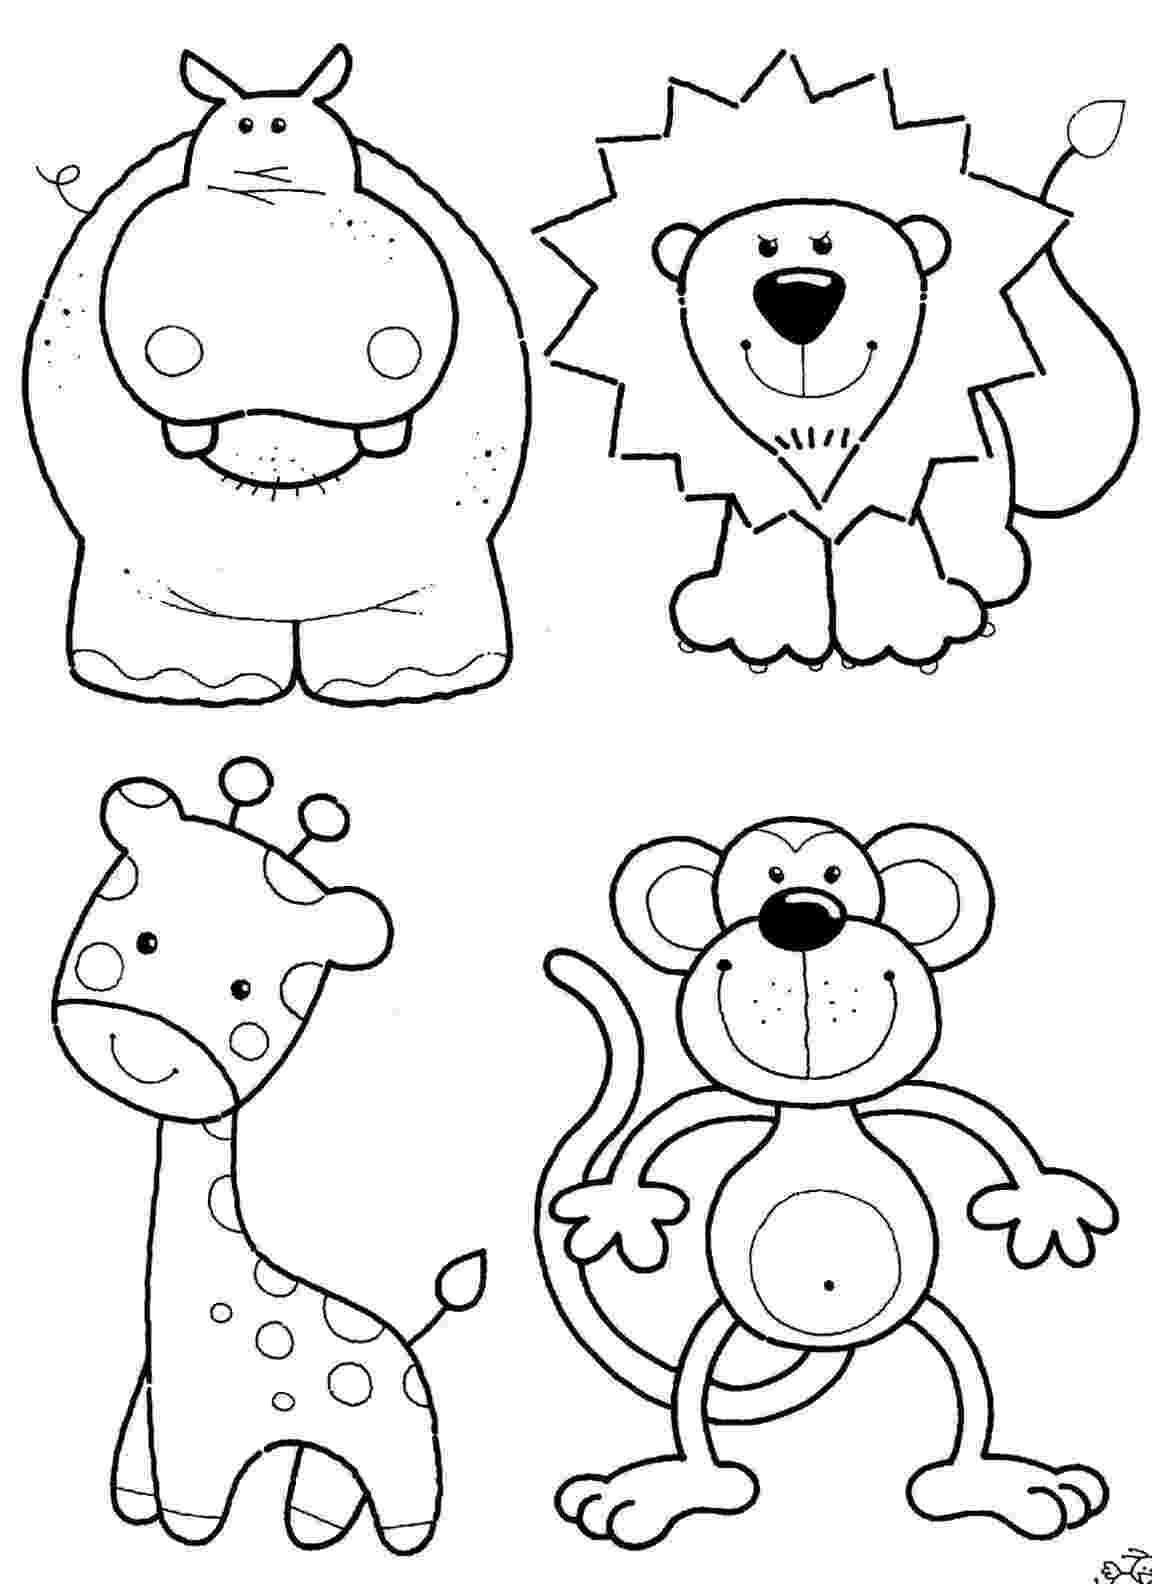 jungle animals coloring pages jungle coloring pages best coloring pages for kids coloring jungle animals pages